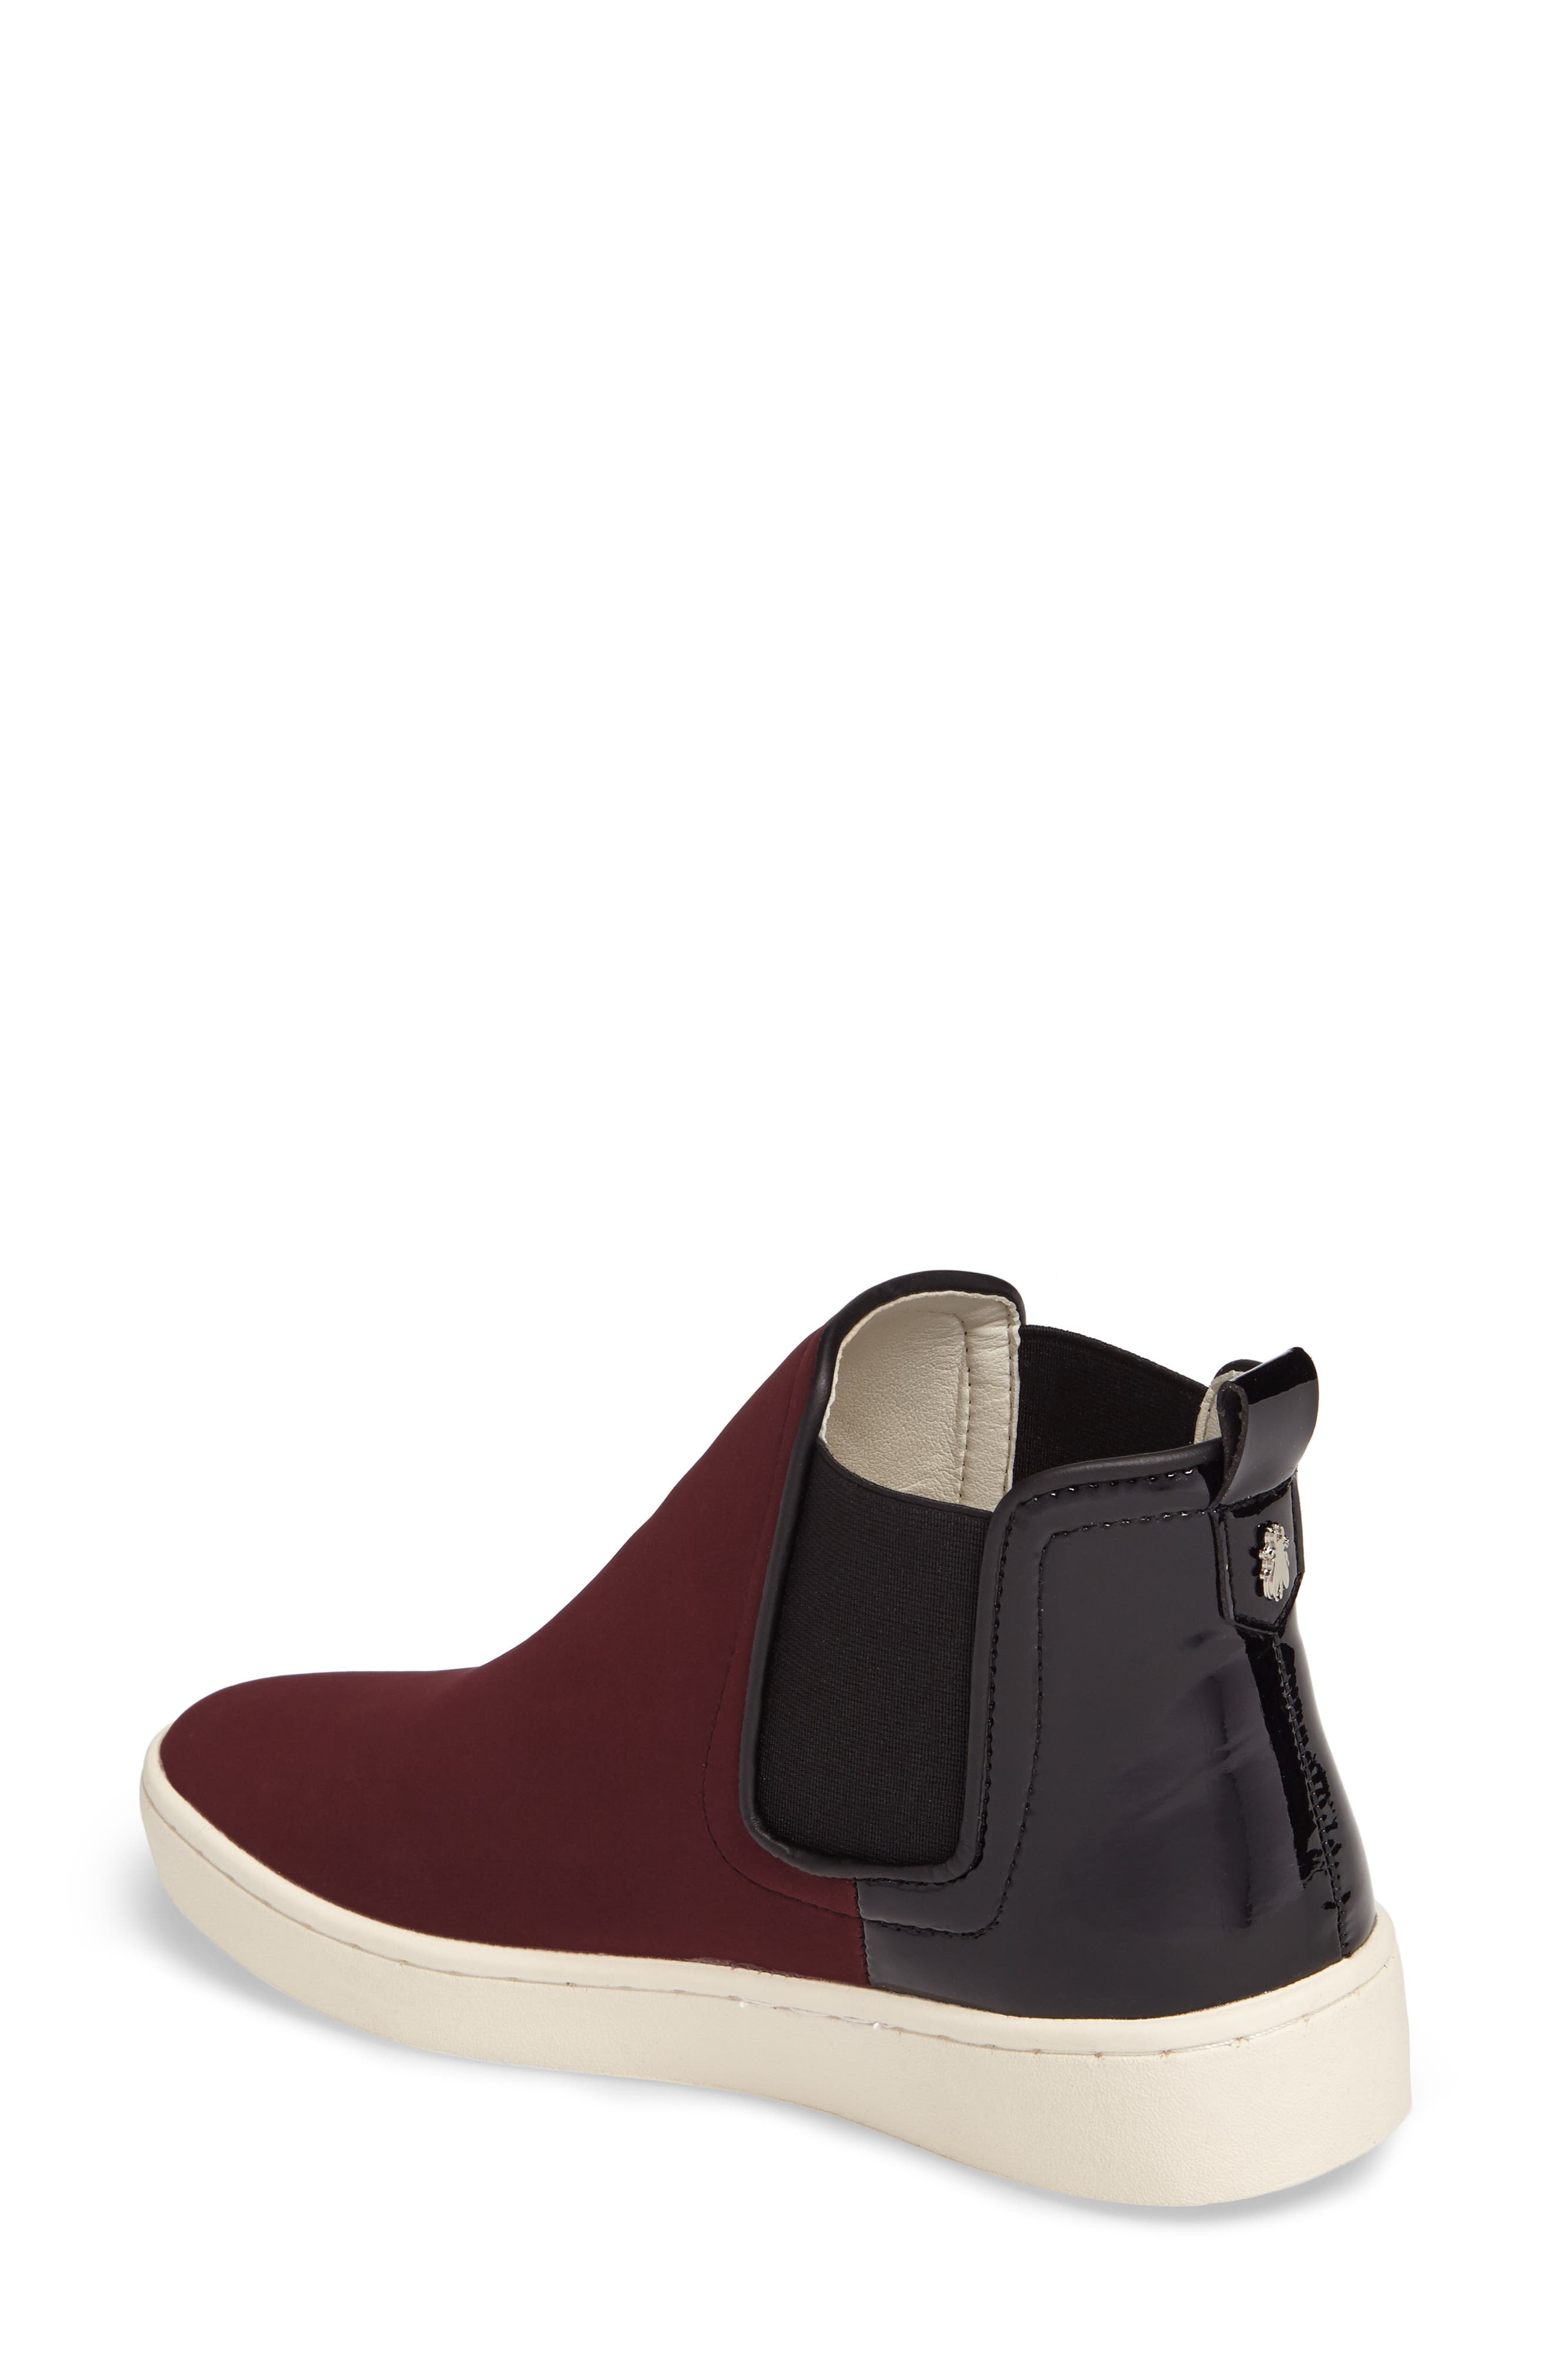 'Mabs' Slip-On Platform Sneaker,                             Alternate thumbnail 2, color,                             Bordeaux/ Black Leather